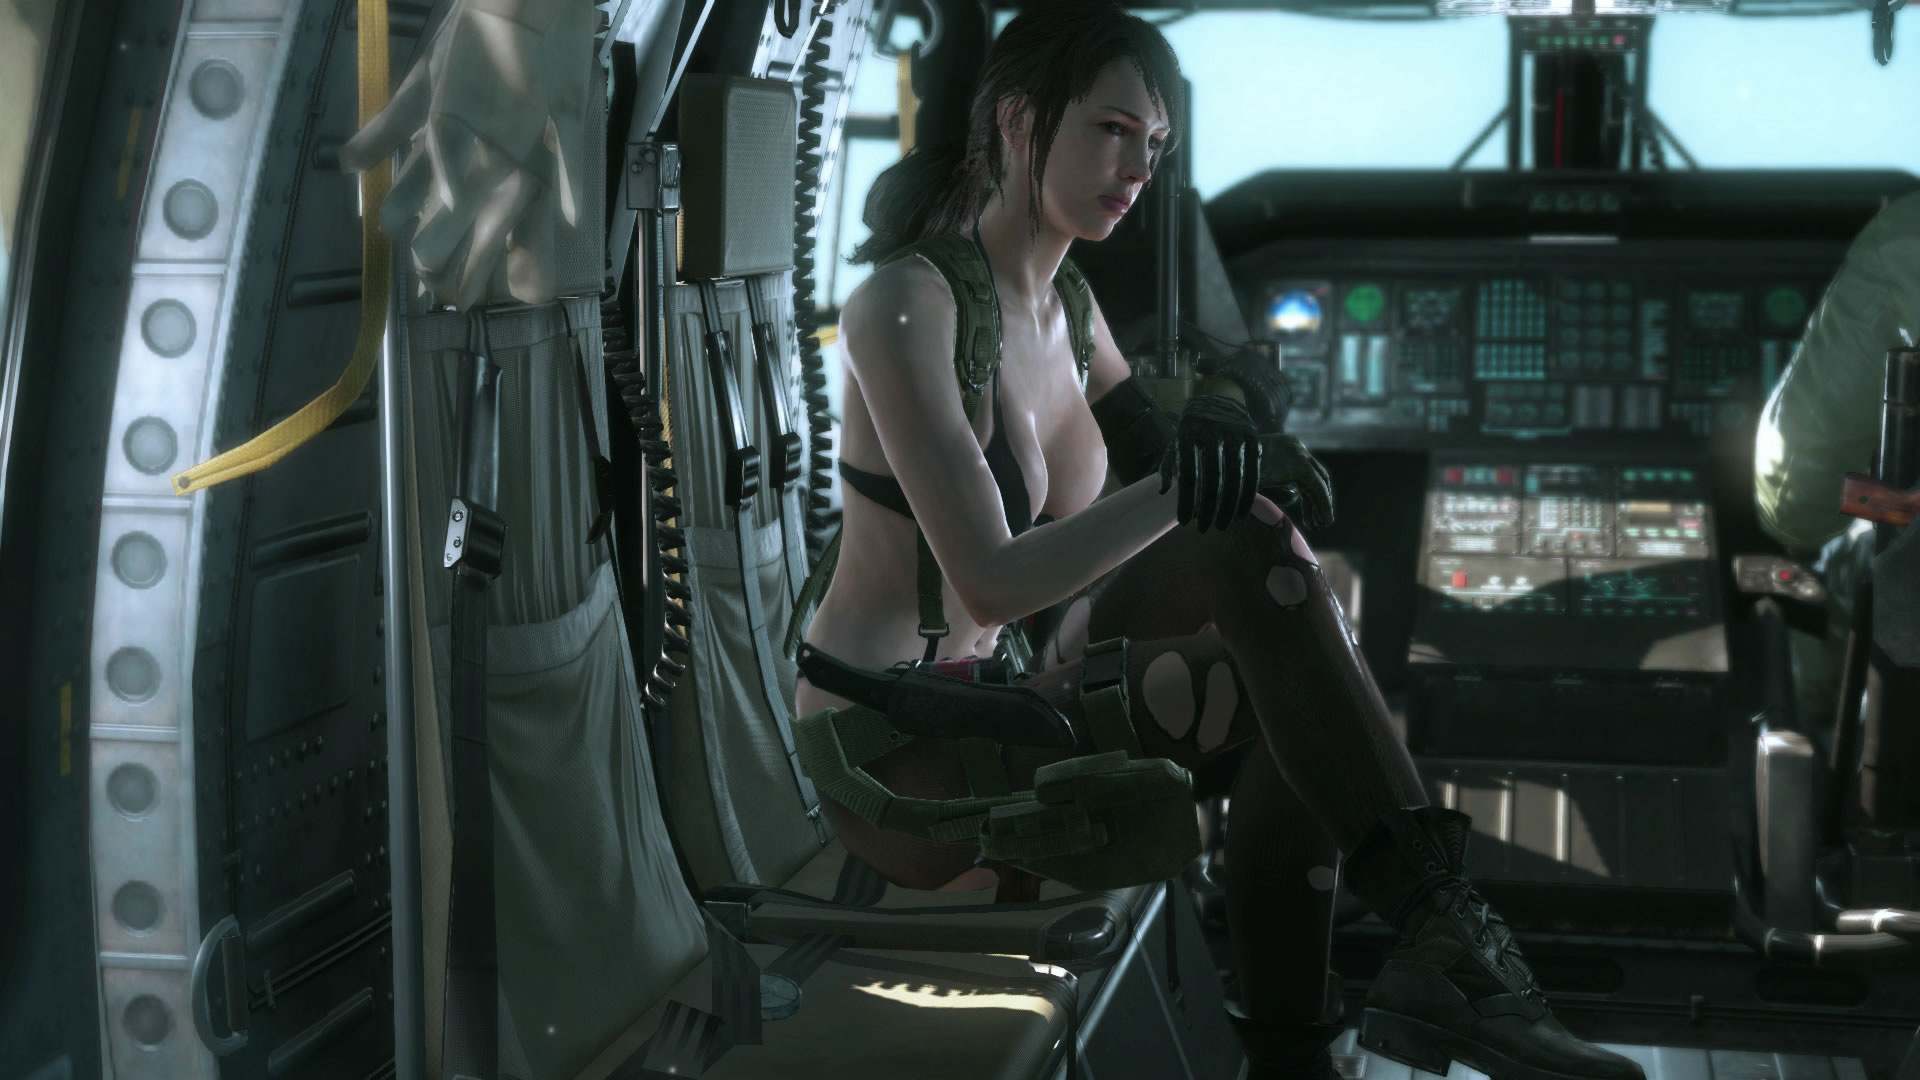 Metal-Gear-Solid-V-The-Phantom-Pain-E3-2015-Screen-Quiet-Chopper